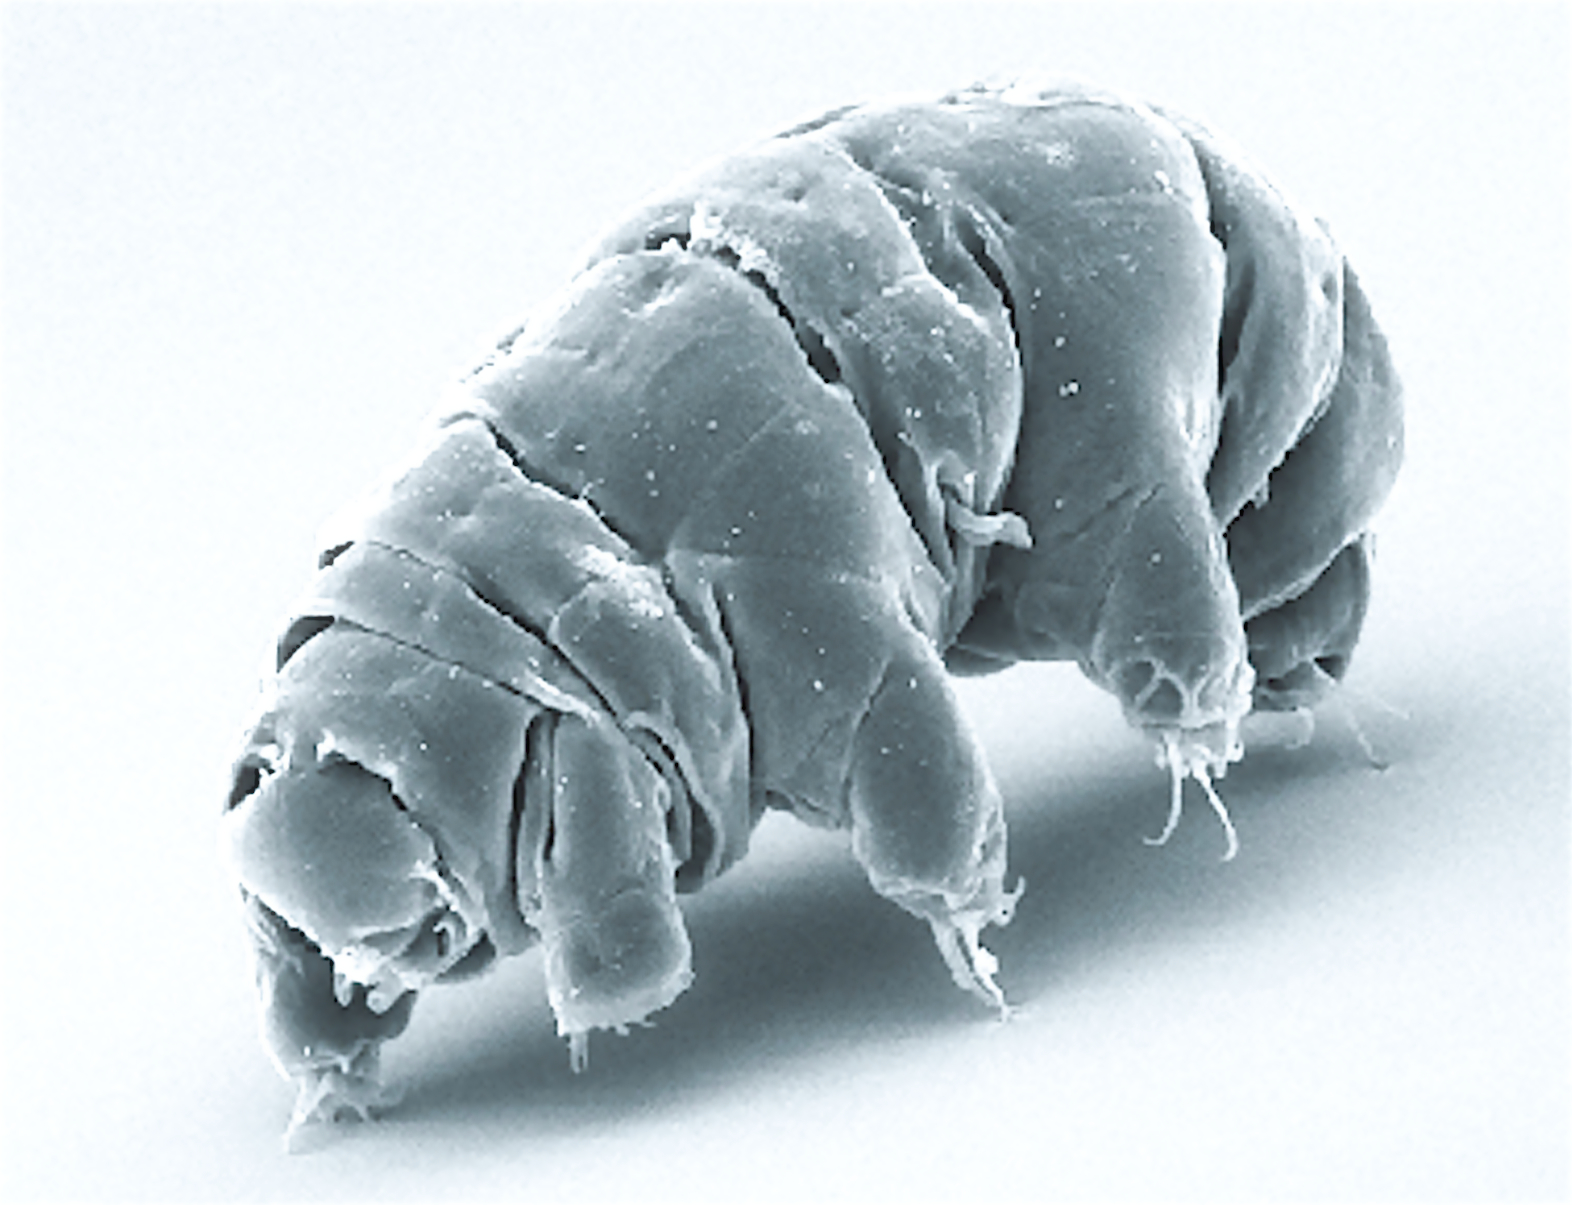 Tardigrades: we're now polluting the moon with near indestructible little creatures